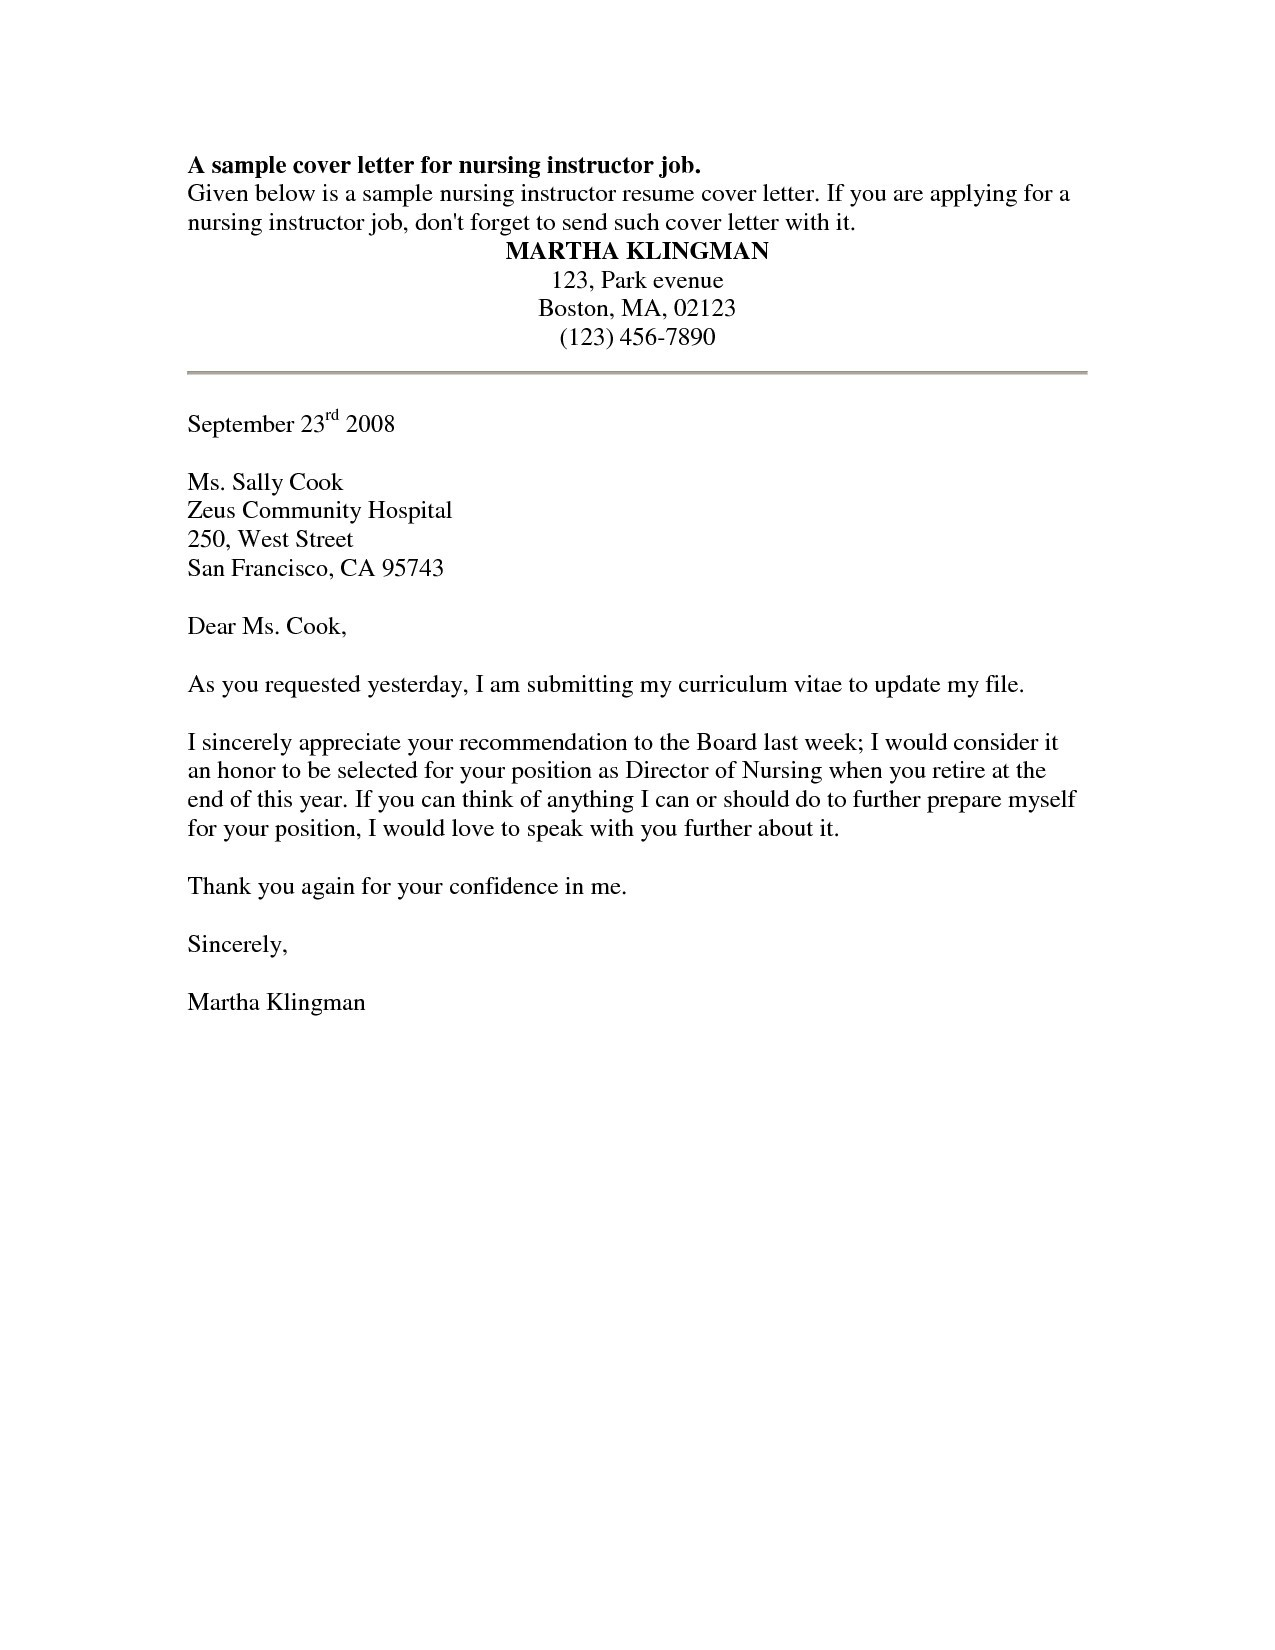 Demotion Letter Template - What Does A Resume Cover Letter Look Like Job Application Letter